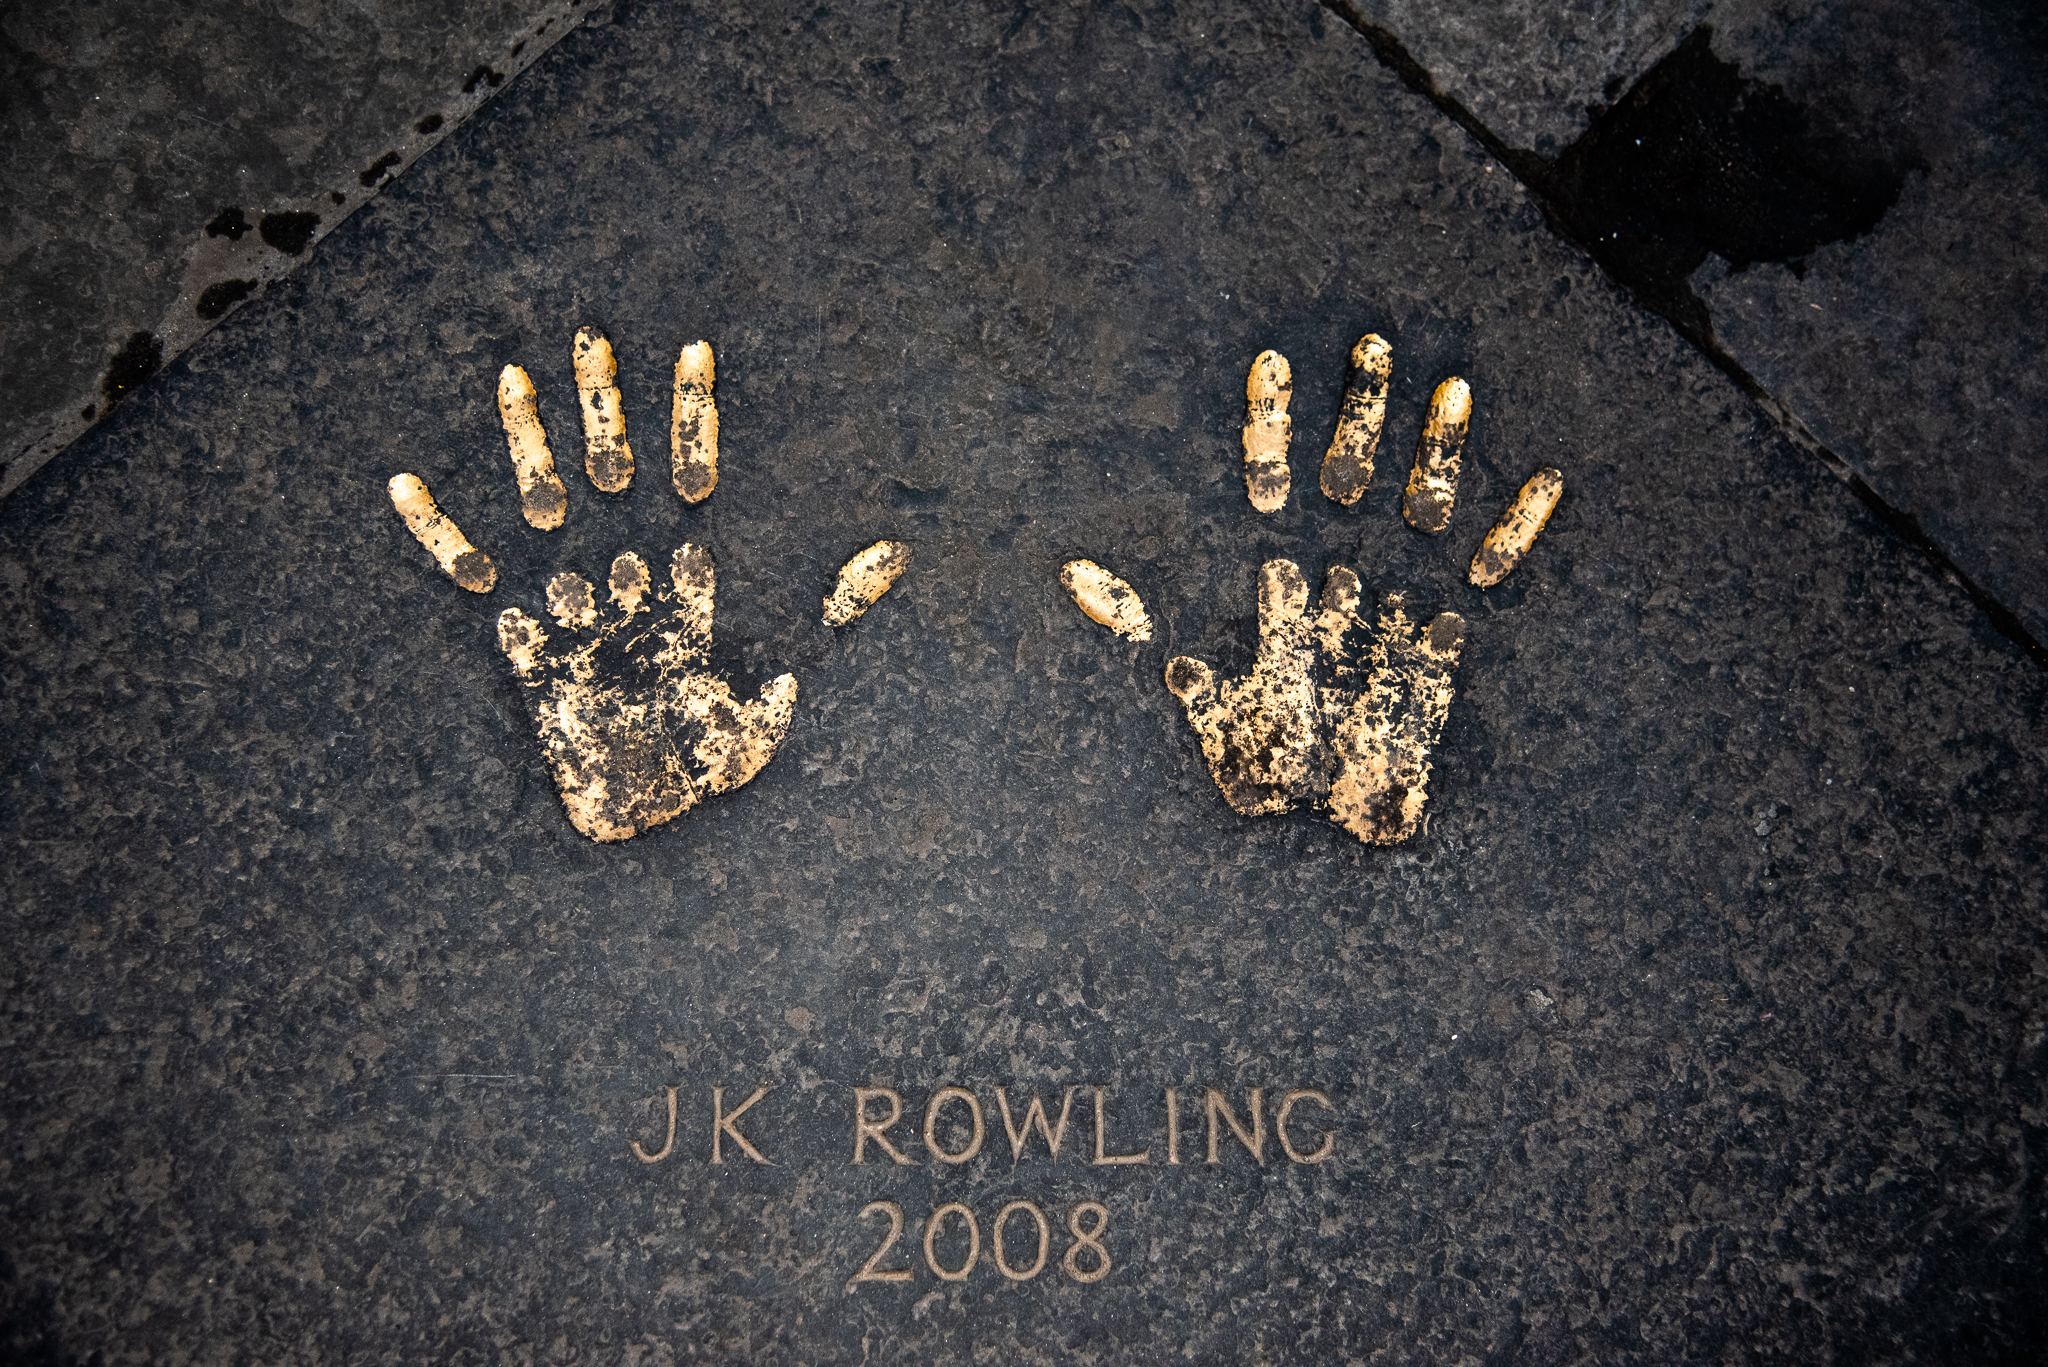 harry potter, edinburgh, magical, tinyboots, jk rowling, hands